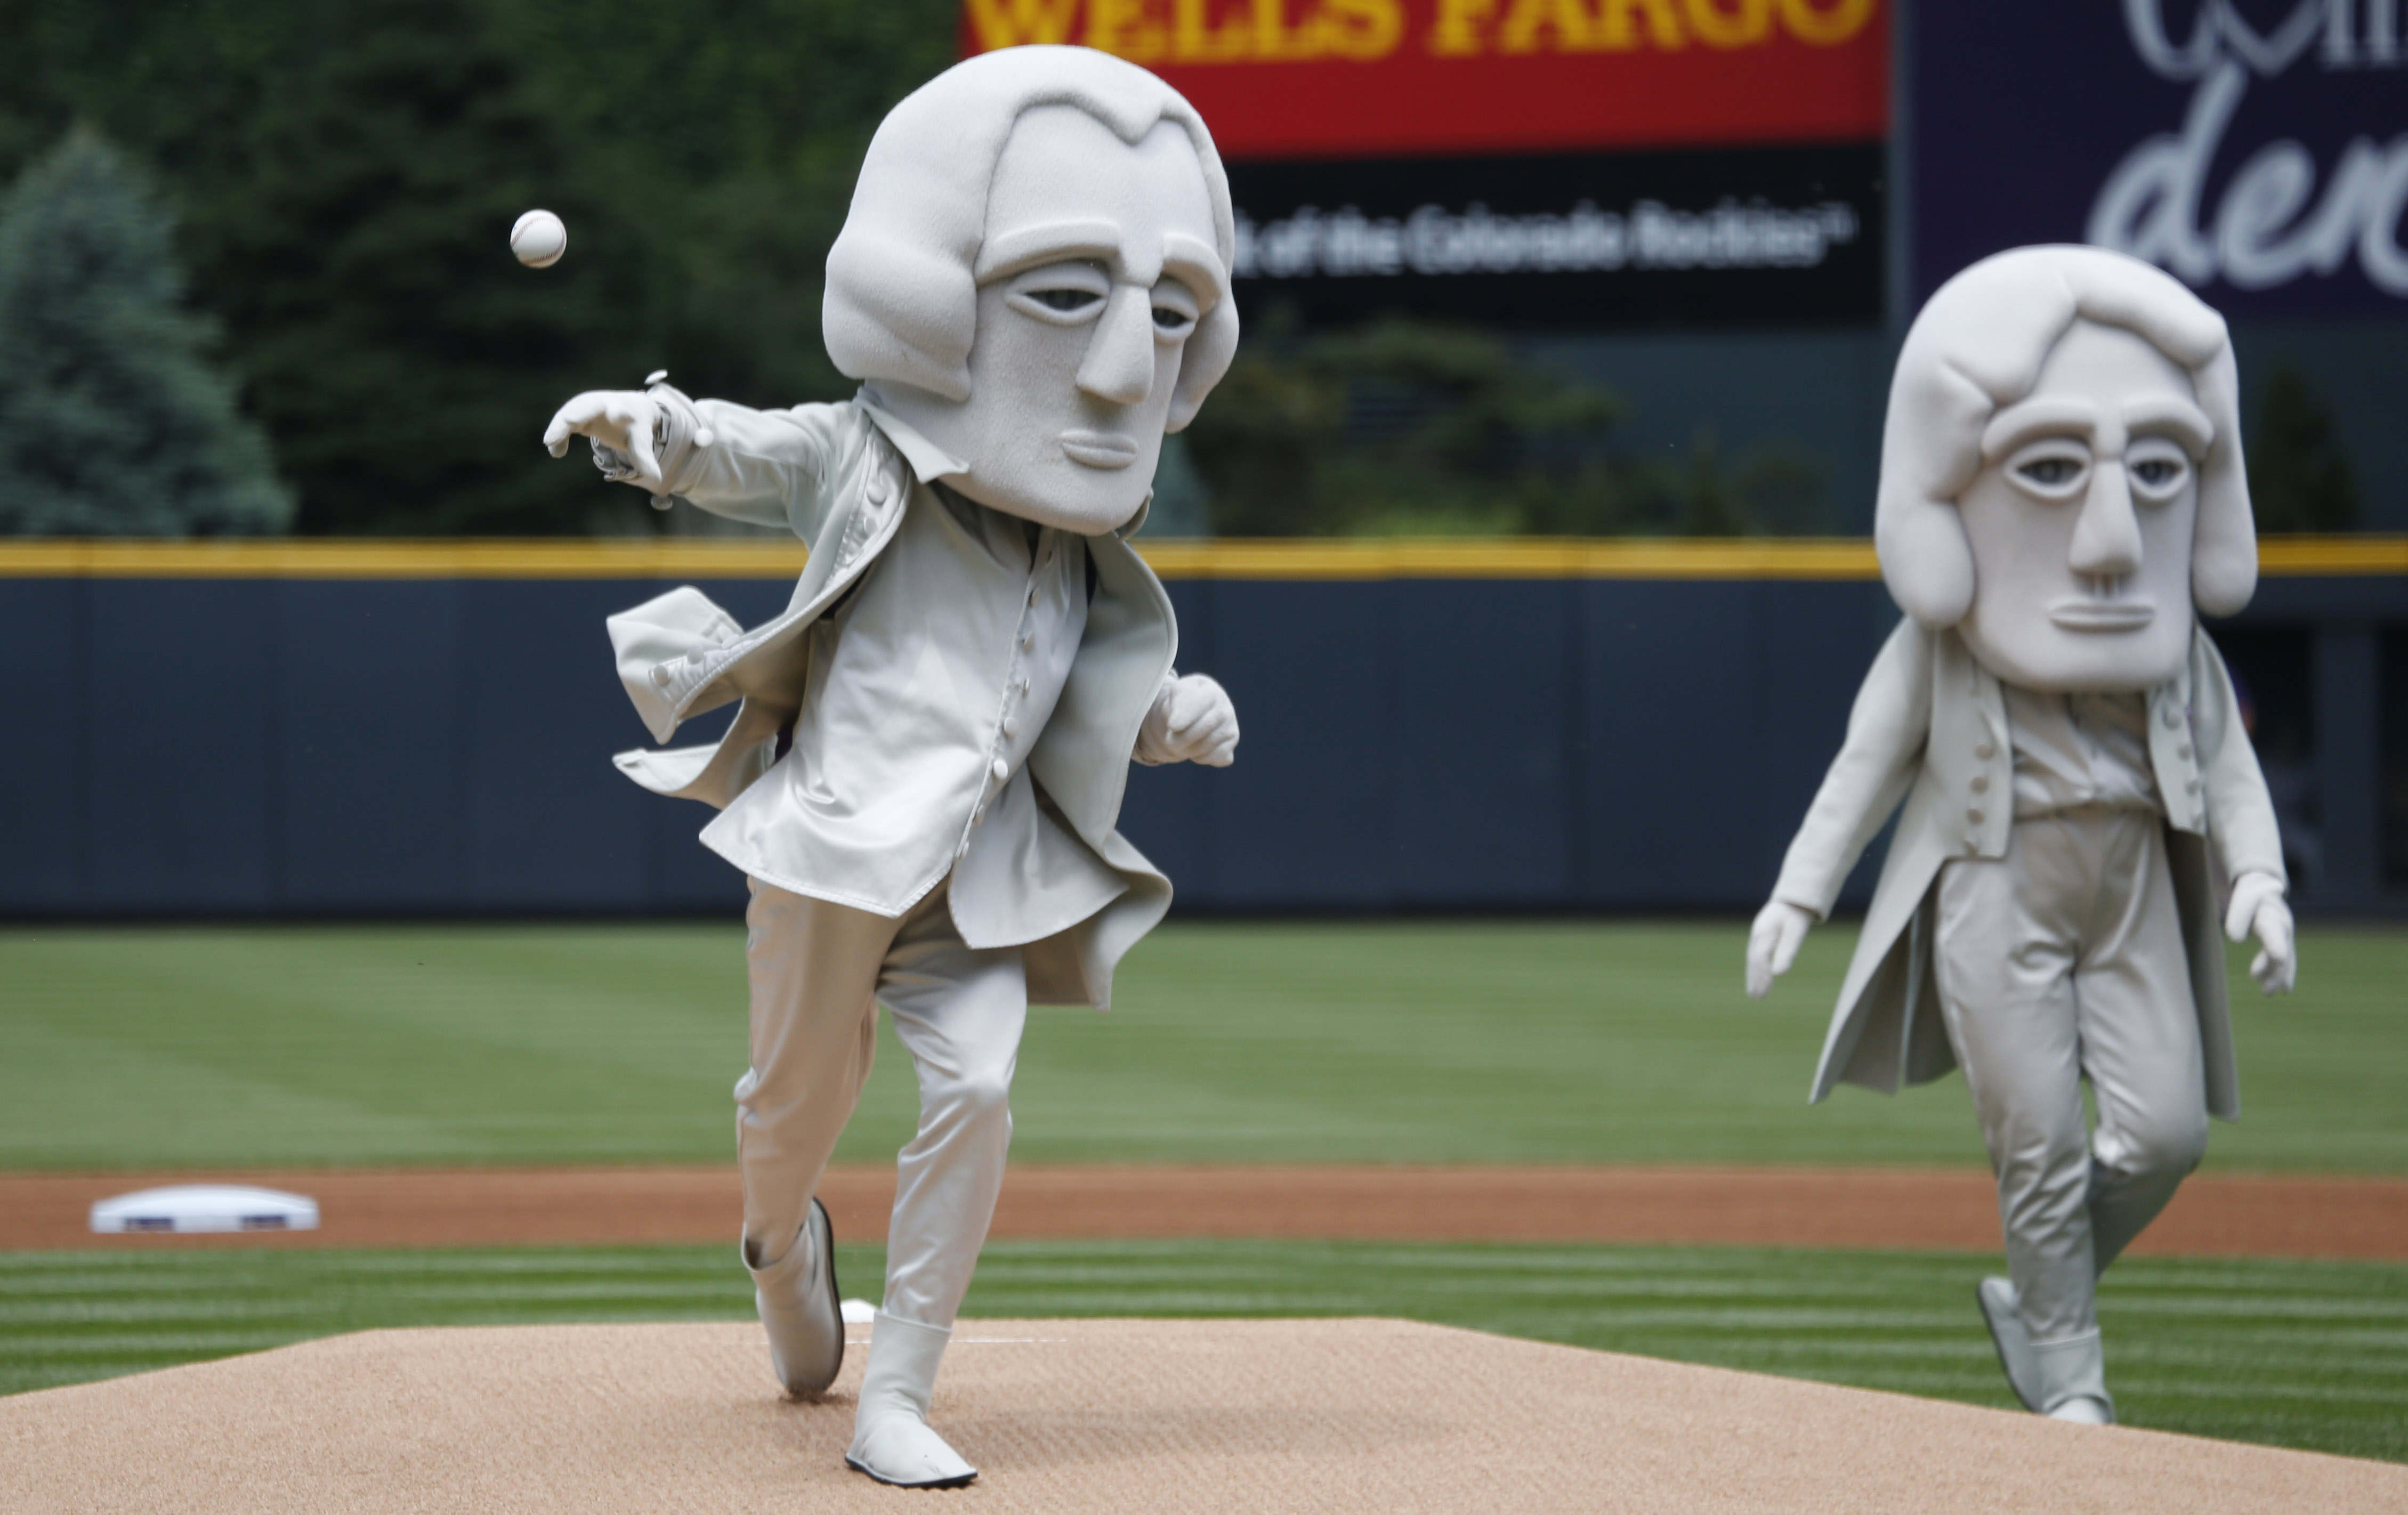 As part of an effort to promote tourism in the Black Hills of South Dakota, one of the U.S. Presidents depicted in the sculpture in the granite face of Mount Rushmore, George Washington, throws out the ceremonial first pitch under the watch of Thomas Jeff